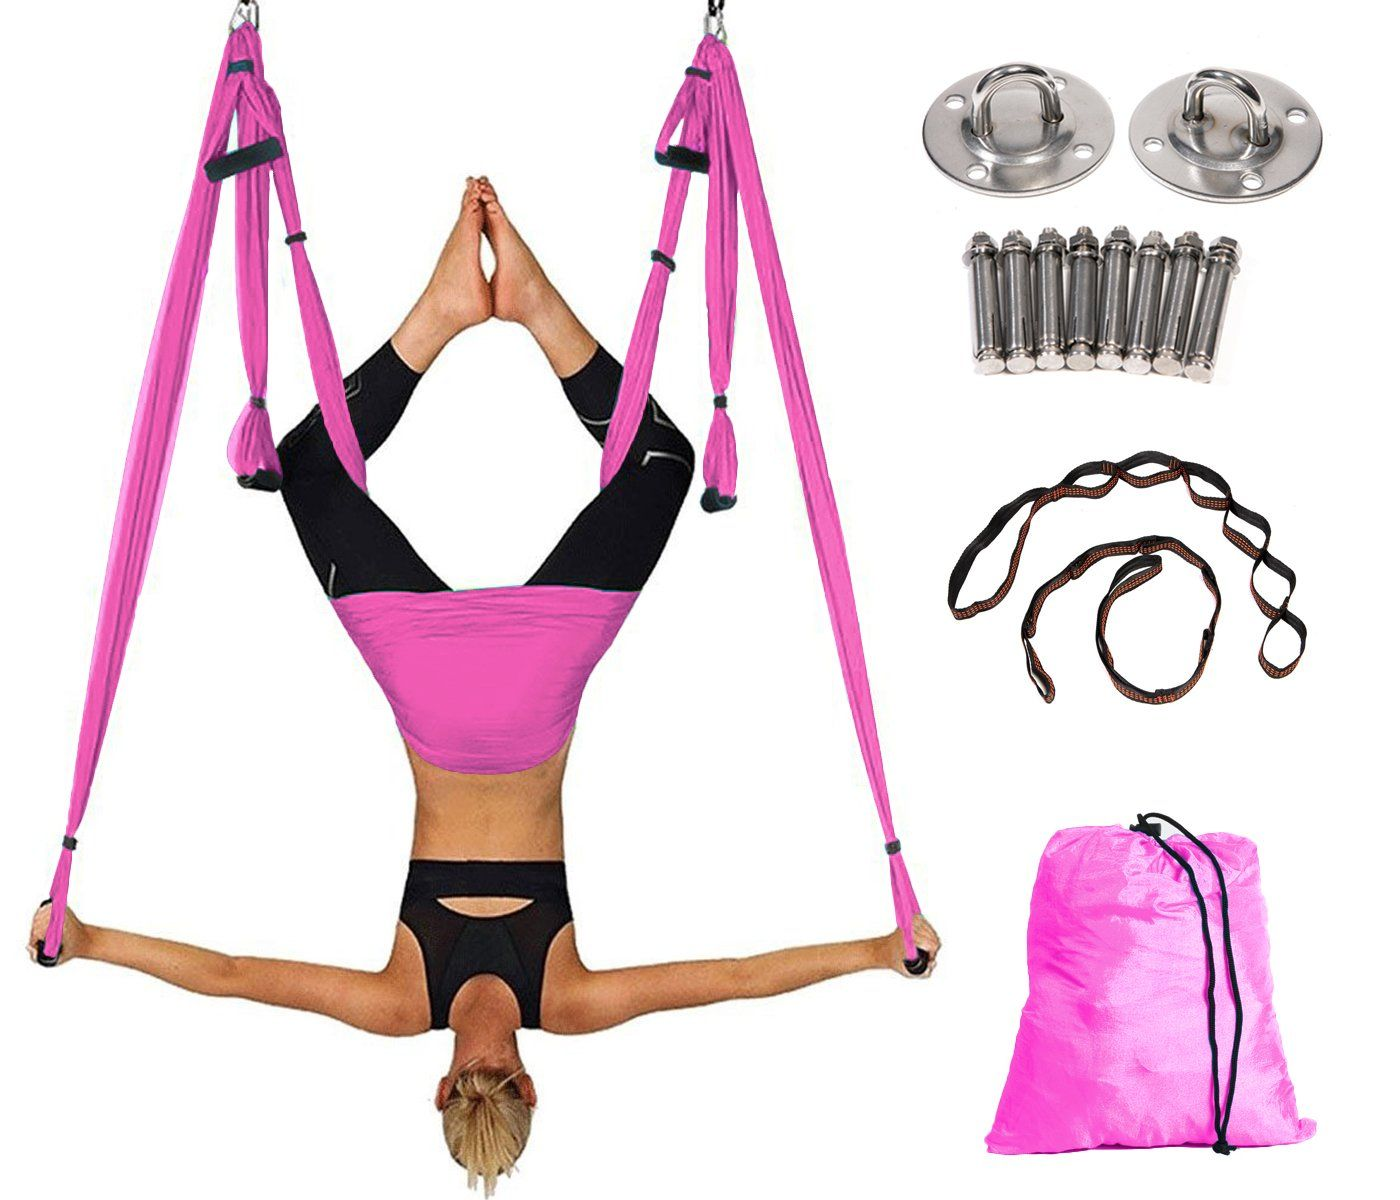 Spring Savings Aerial Yoga Swing For Antigravity And Inversion Exercises With 2 Extension Straps Air Yoga Hanging Swing Pi Aerial Yoga Yoga Swing Yoga Hammock